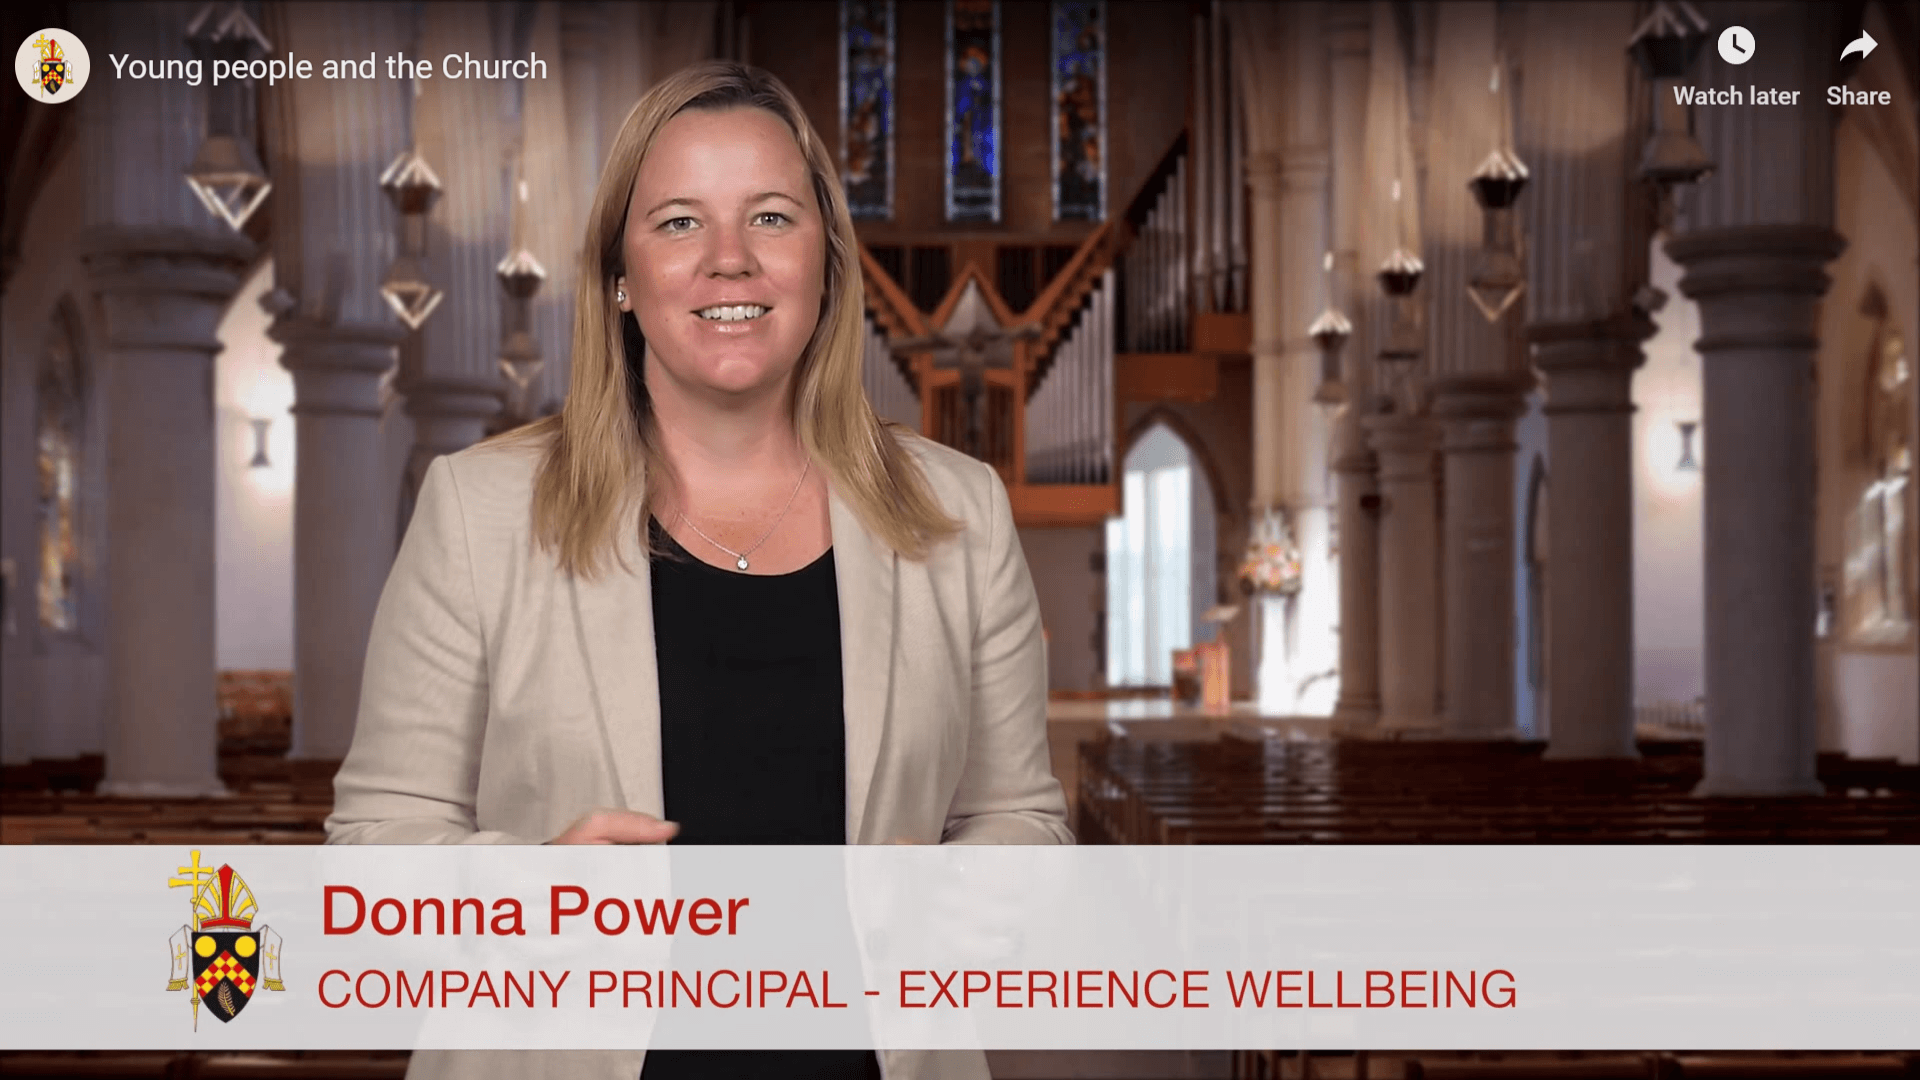 Donna Power from Experience Wellbeing Catholic school retreat facilitator in Brisbane Archdiocese video on young people and the church by Brisbane Catholic Archdiocese